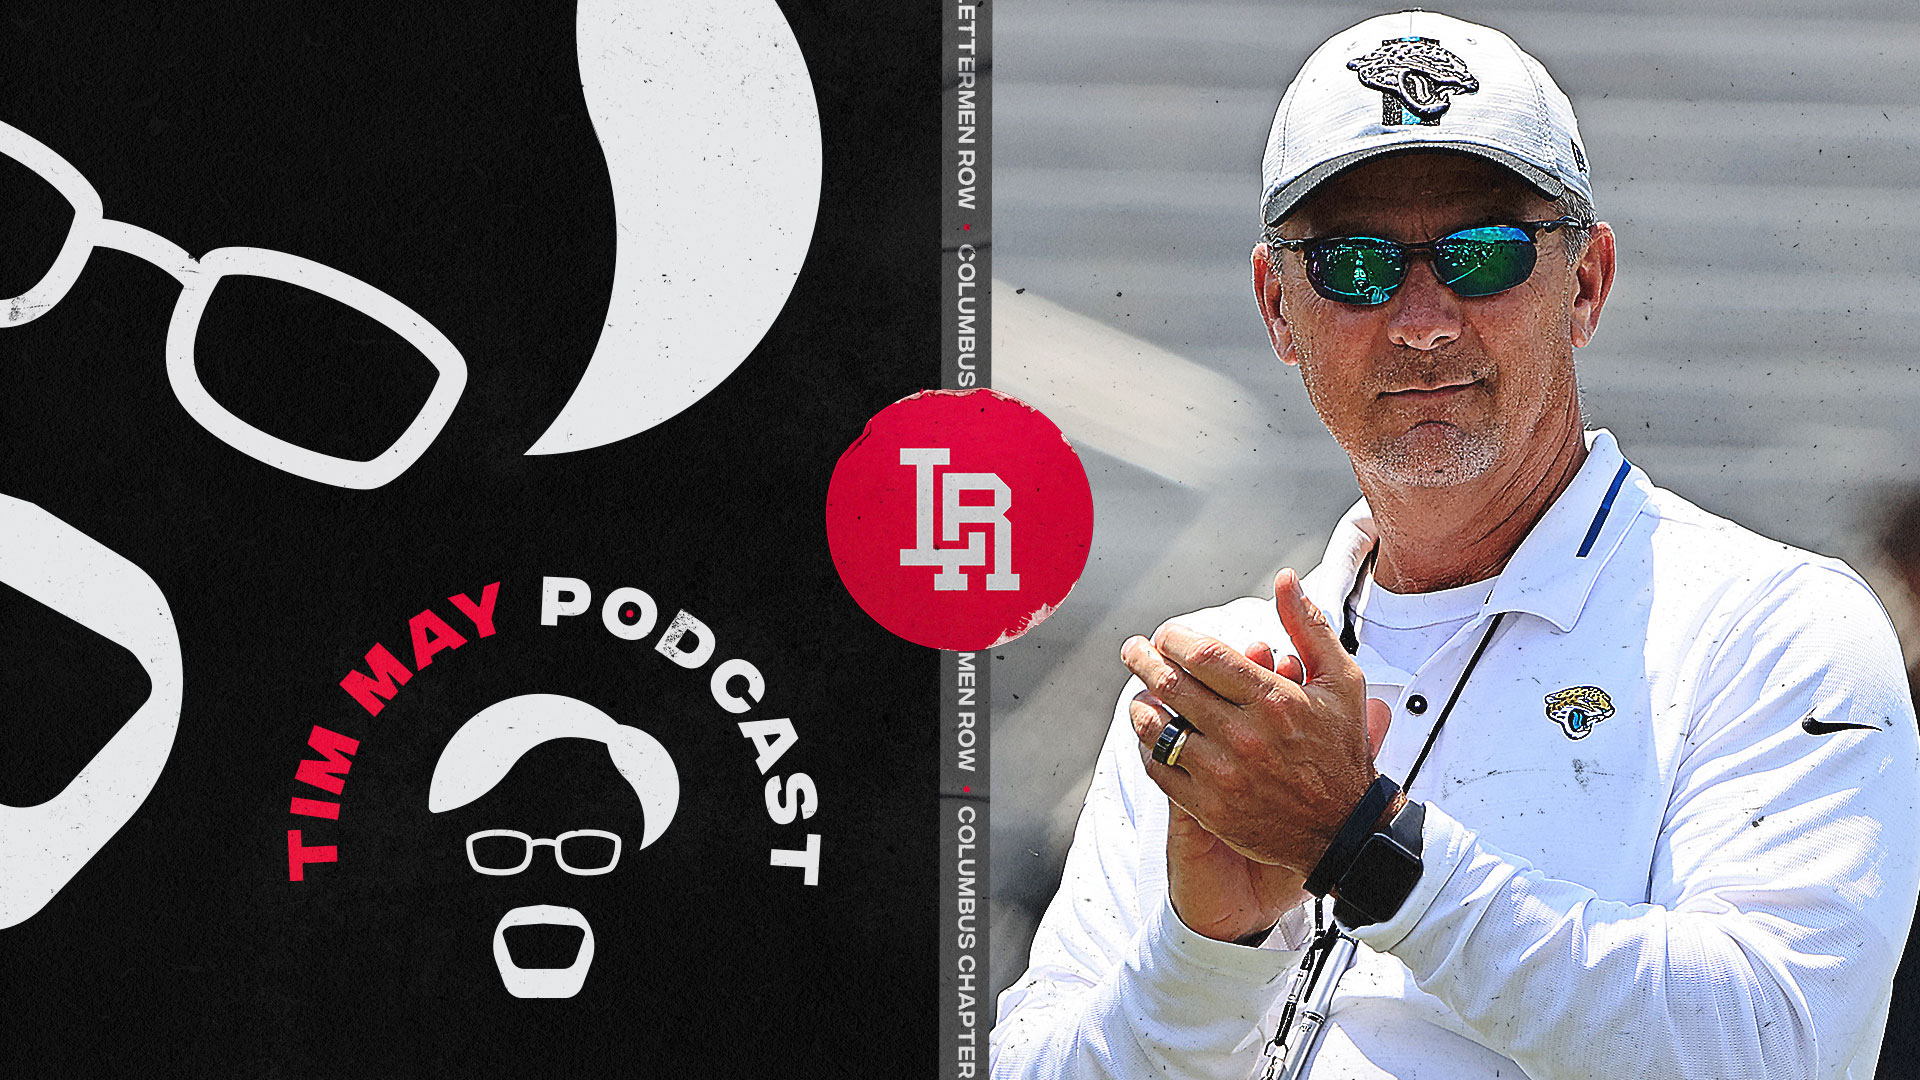 Tim-May_Podcast_Template-urban-meyer